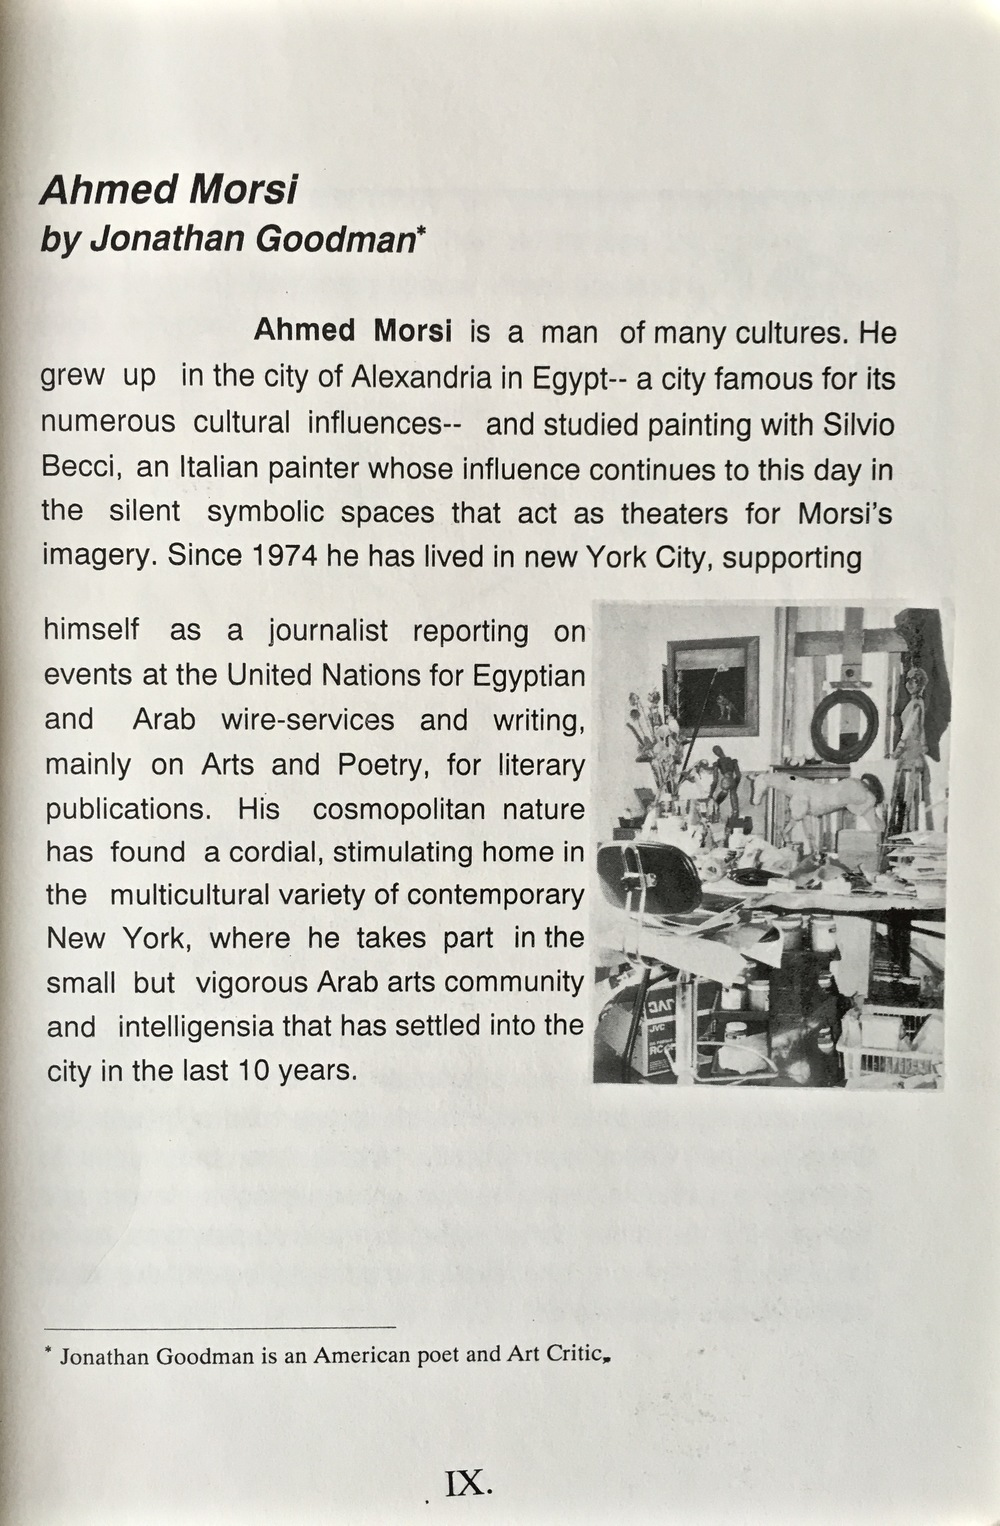 """AHMED MORSI"" Introduction by Jonathan Goodman"